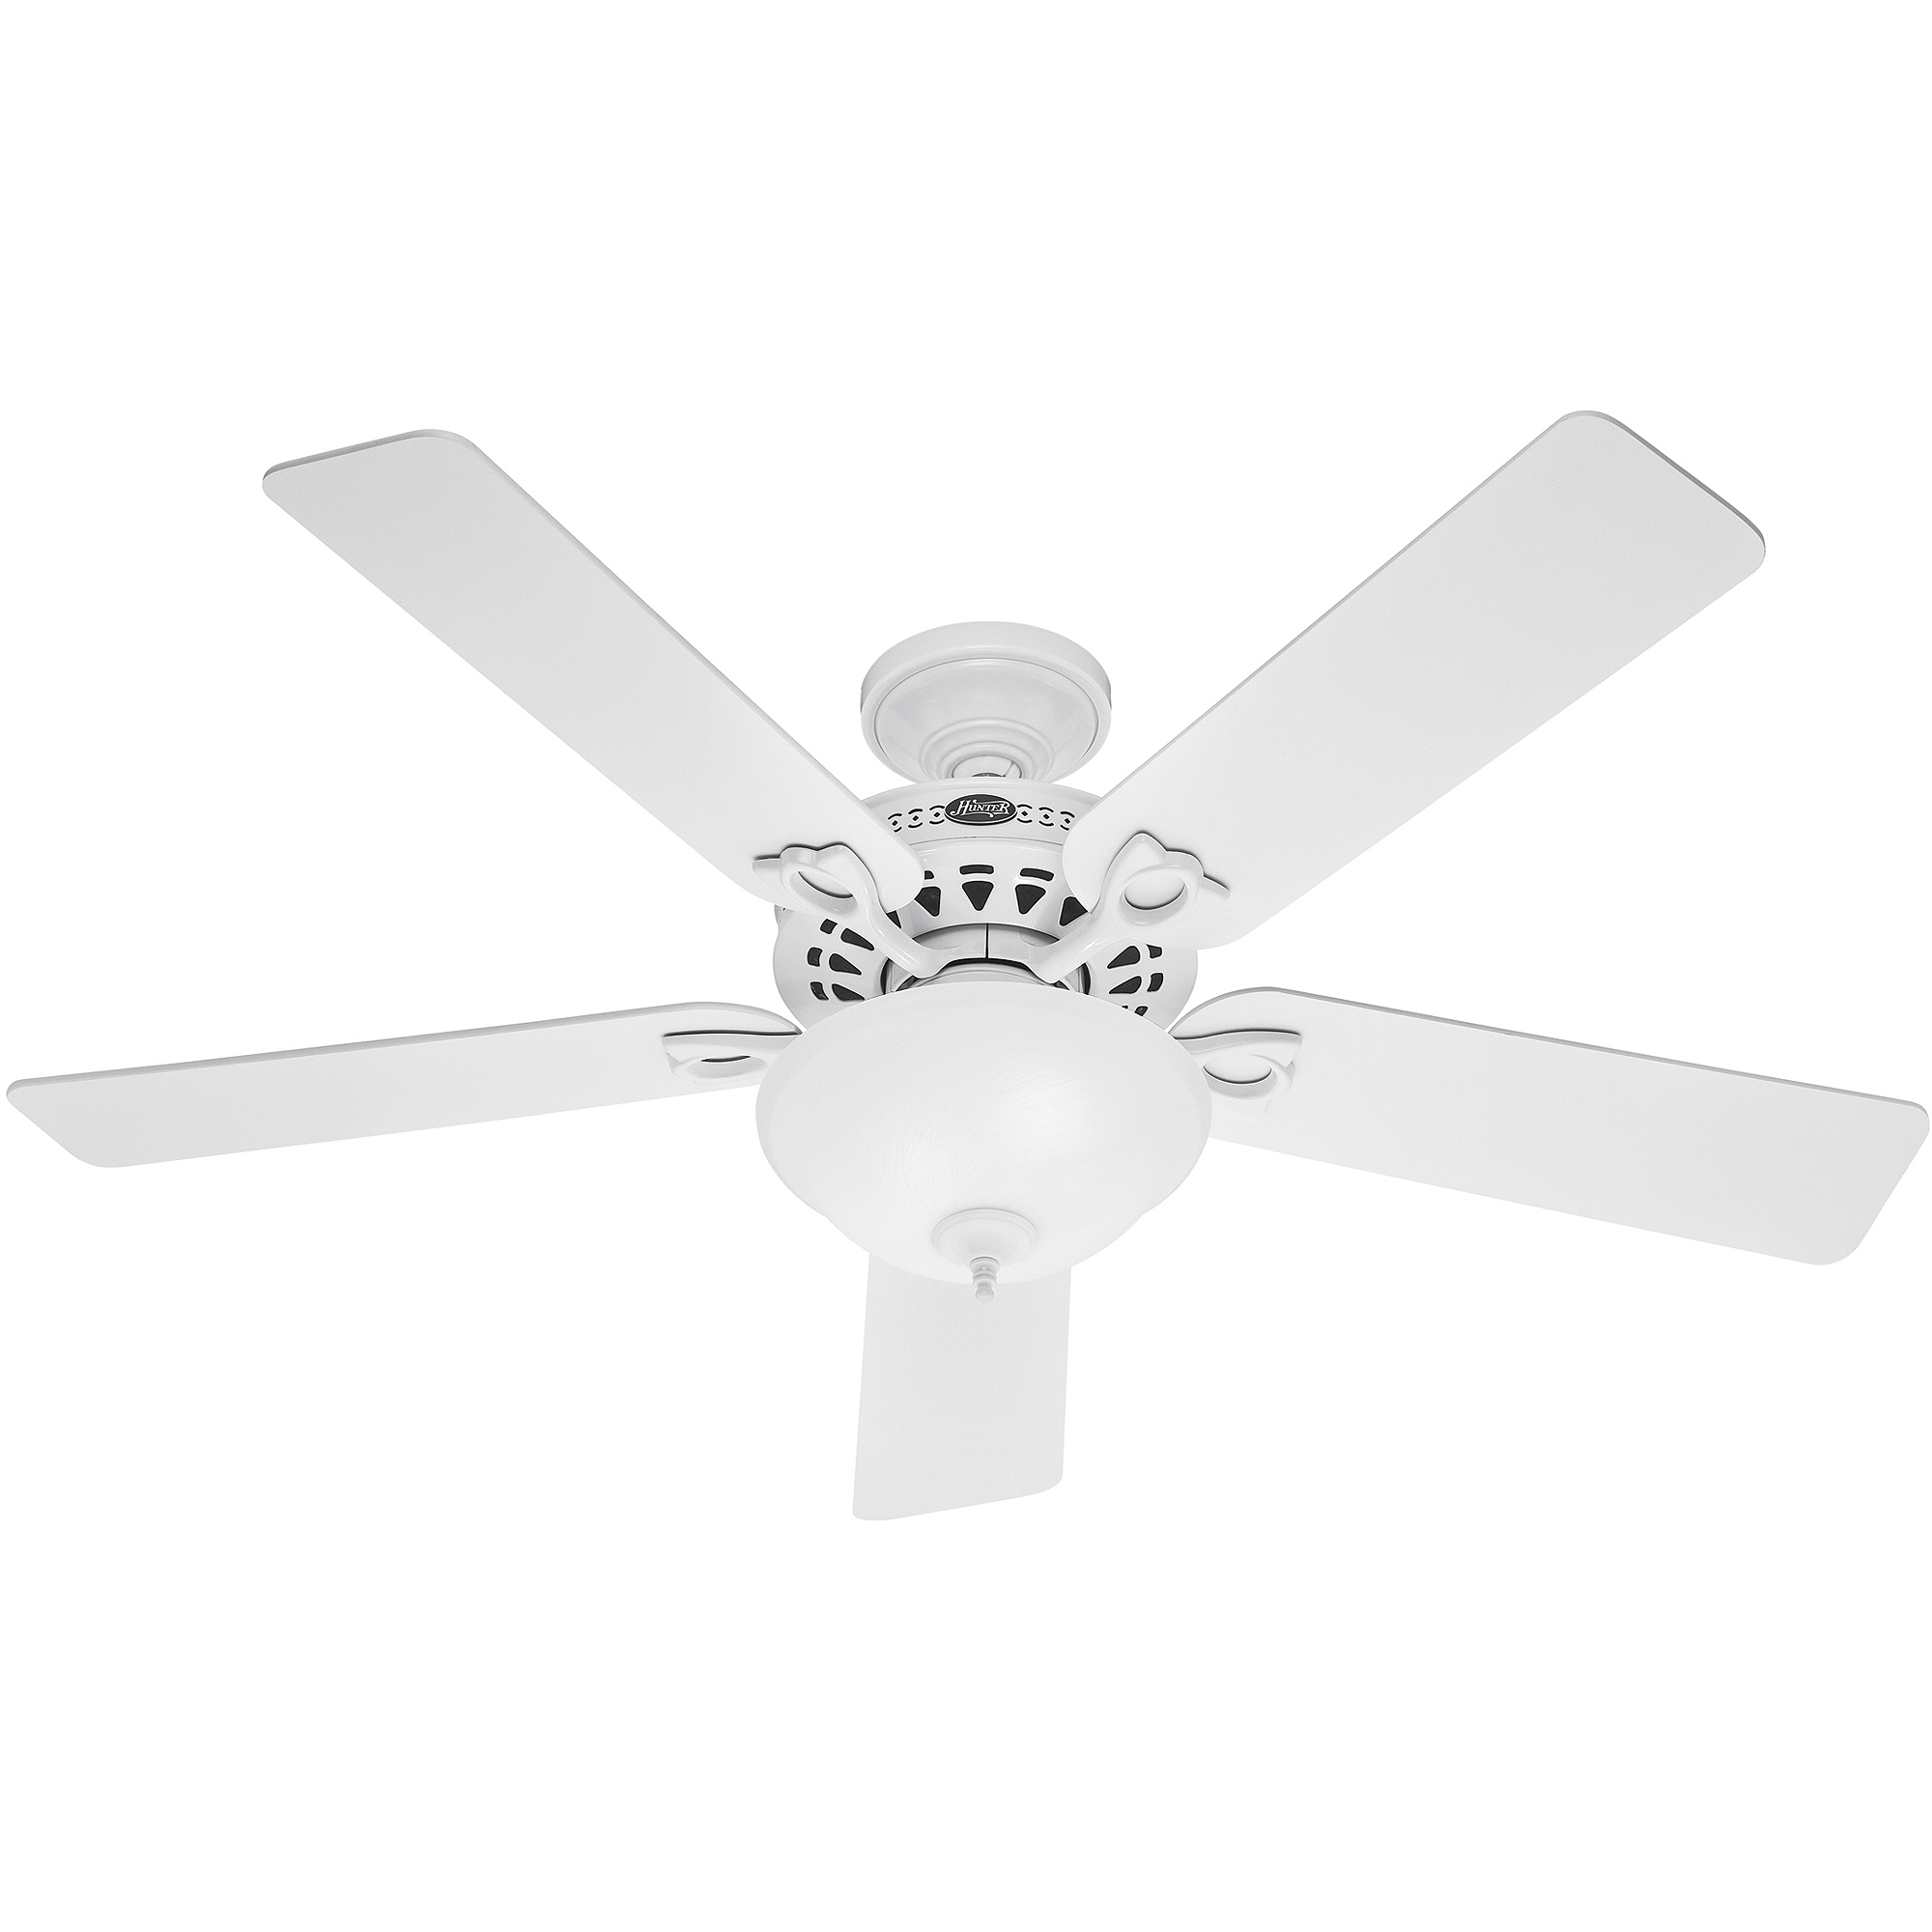 ceiling hunter fan lights white light hugger in for fans not fresh and wonderful with intended newsome